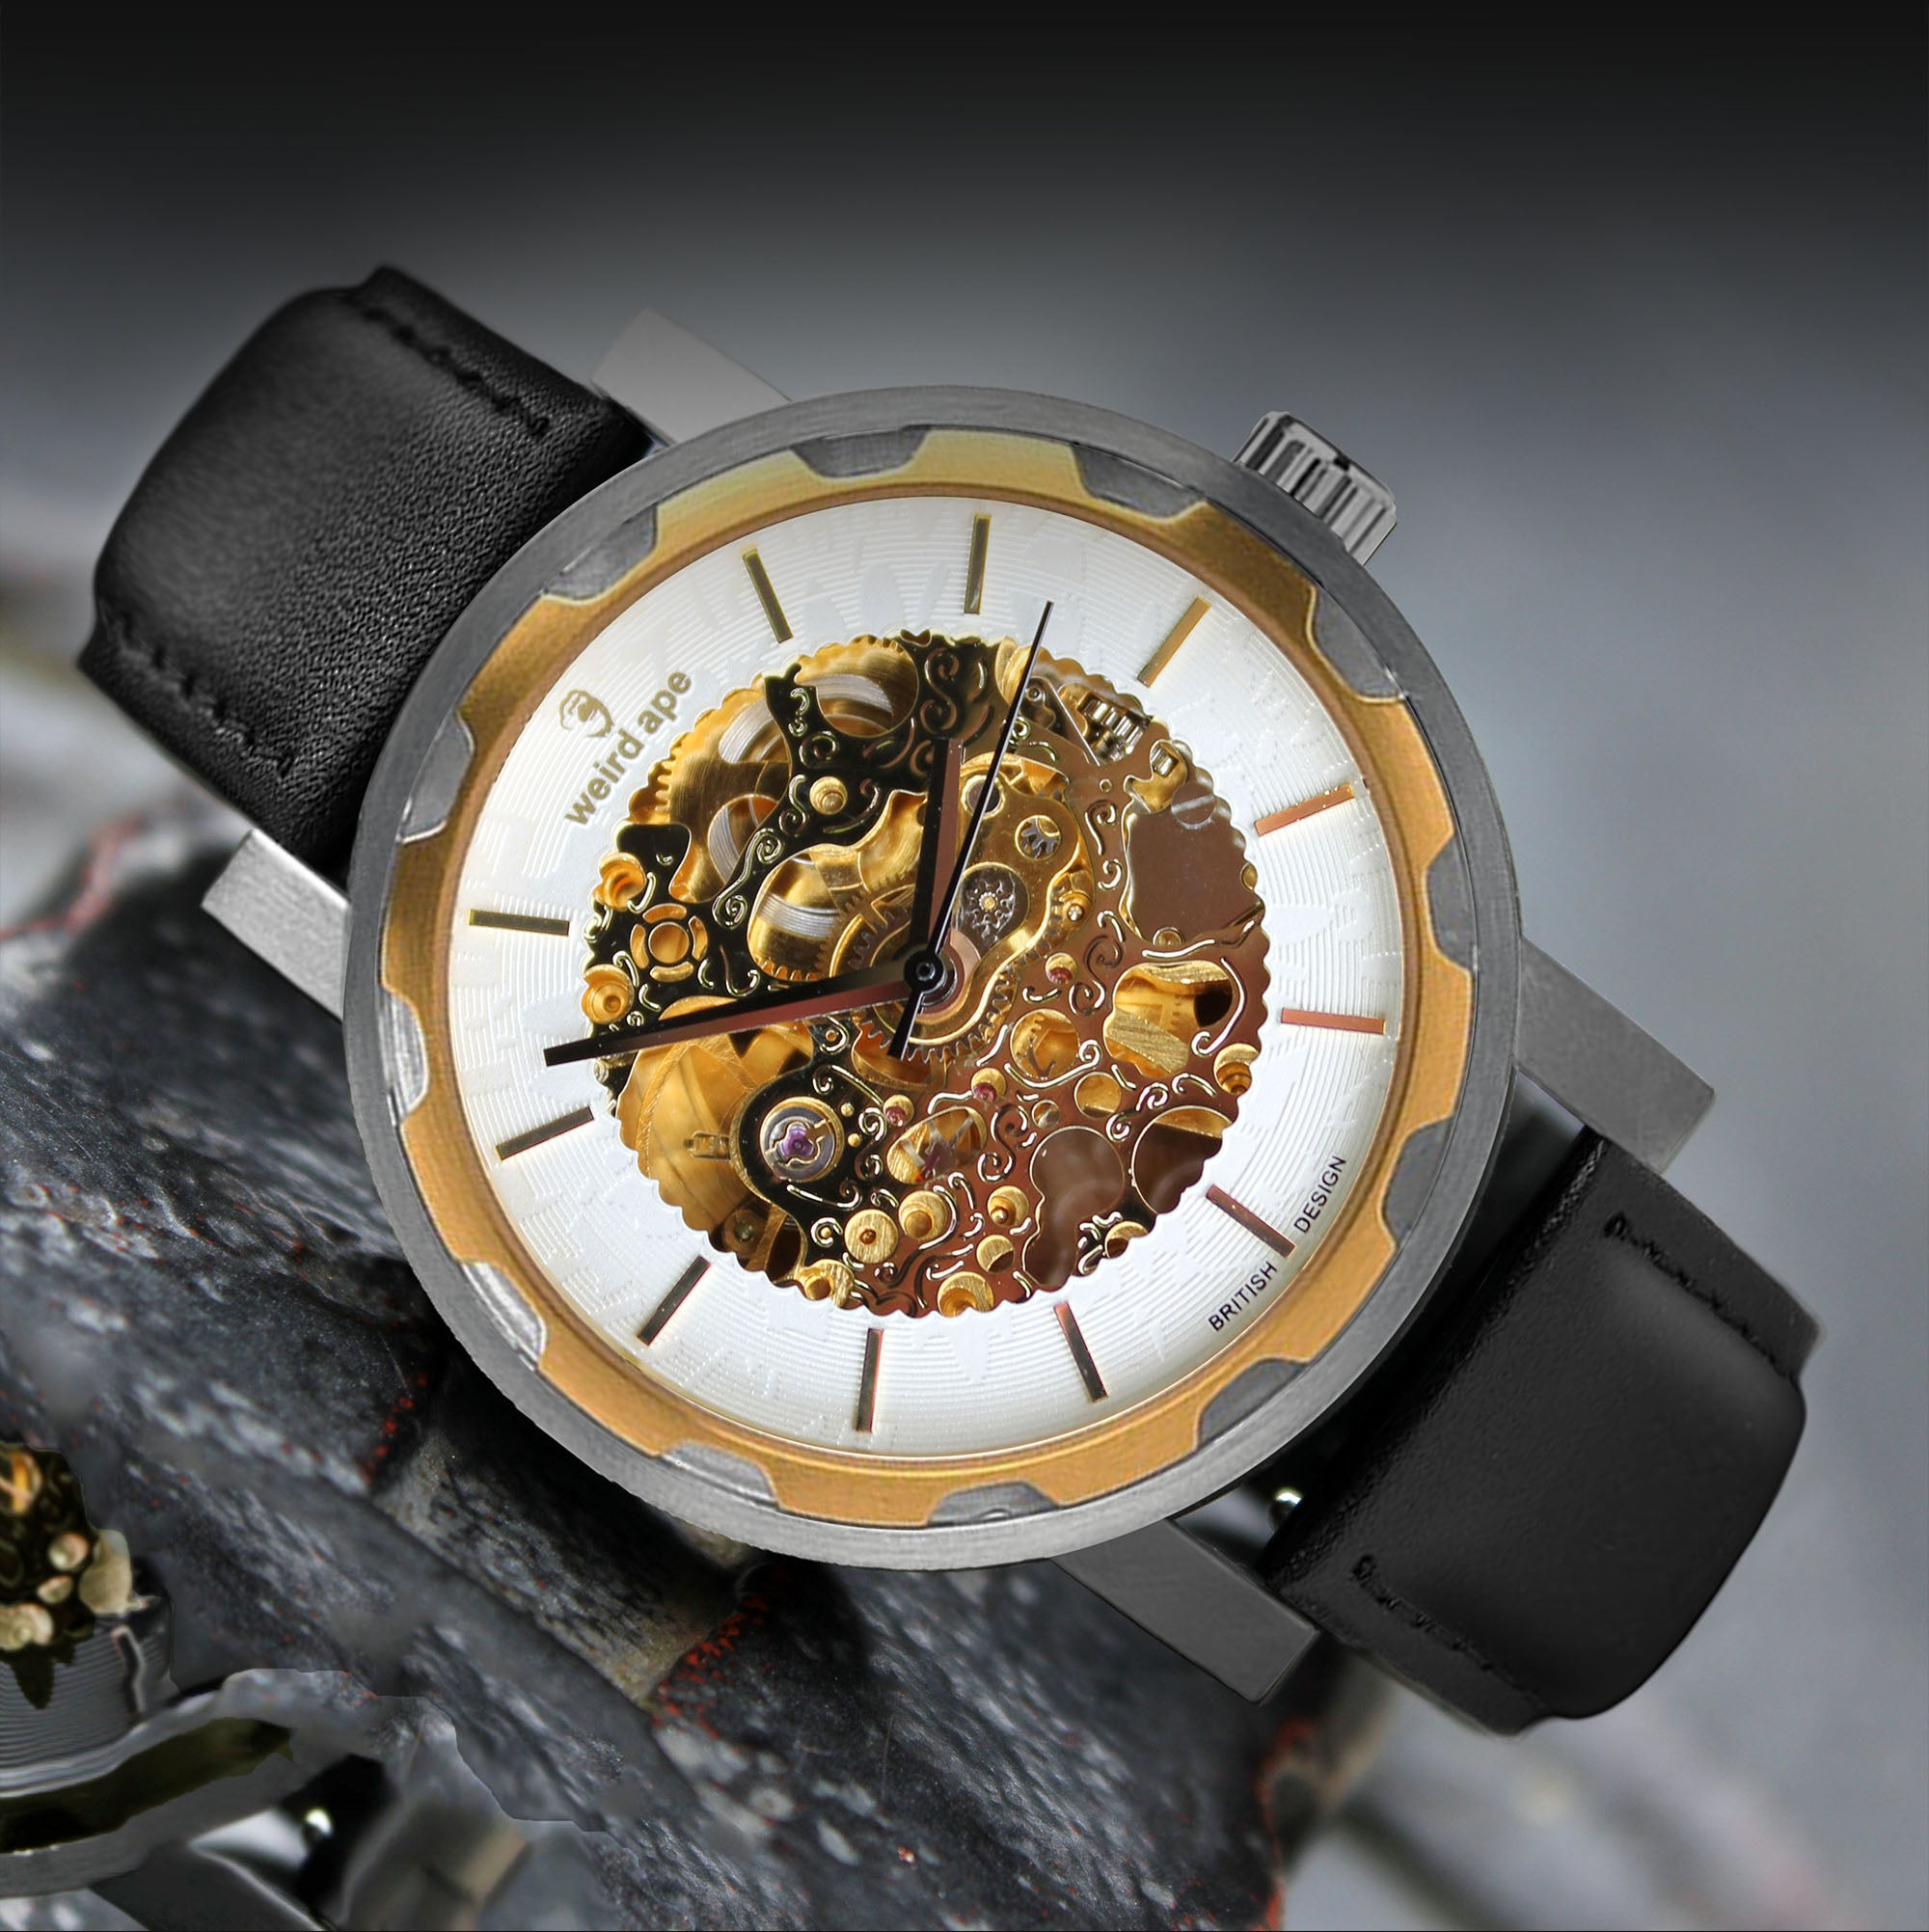 A picture of a gold mechanical watch with a black leather strap.